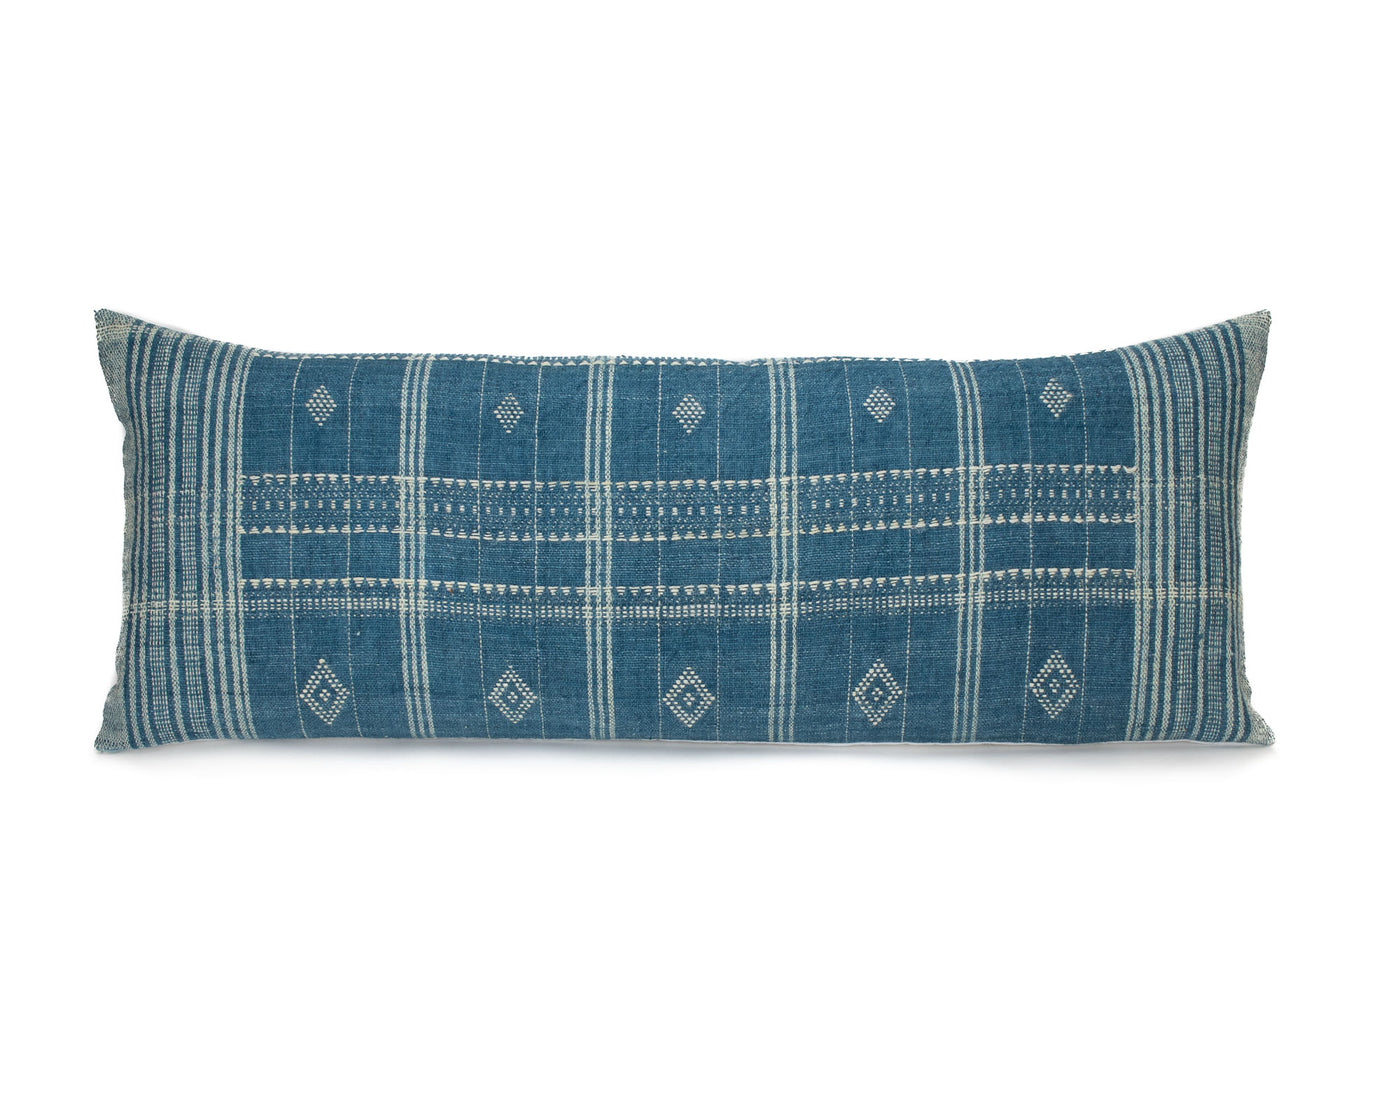 Lolita - Blue Long Lumbar (Pre-Order) - Heddle & Lamm